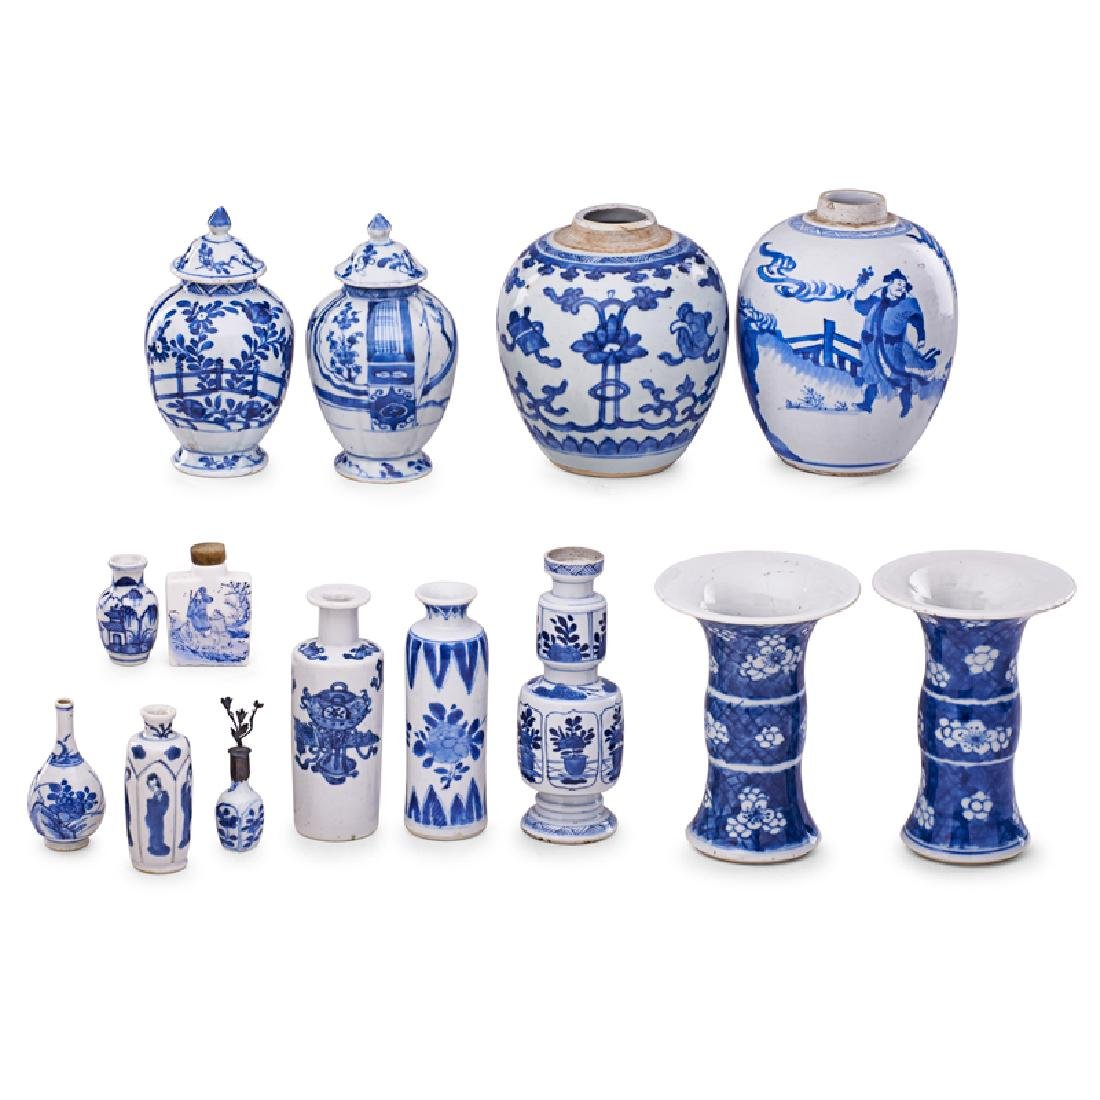 CHINESE EXPORT PORCELAIN VASES